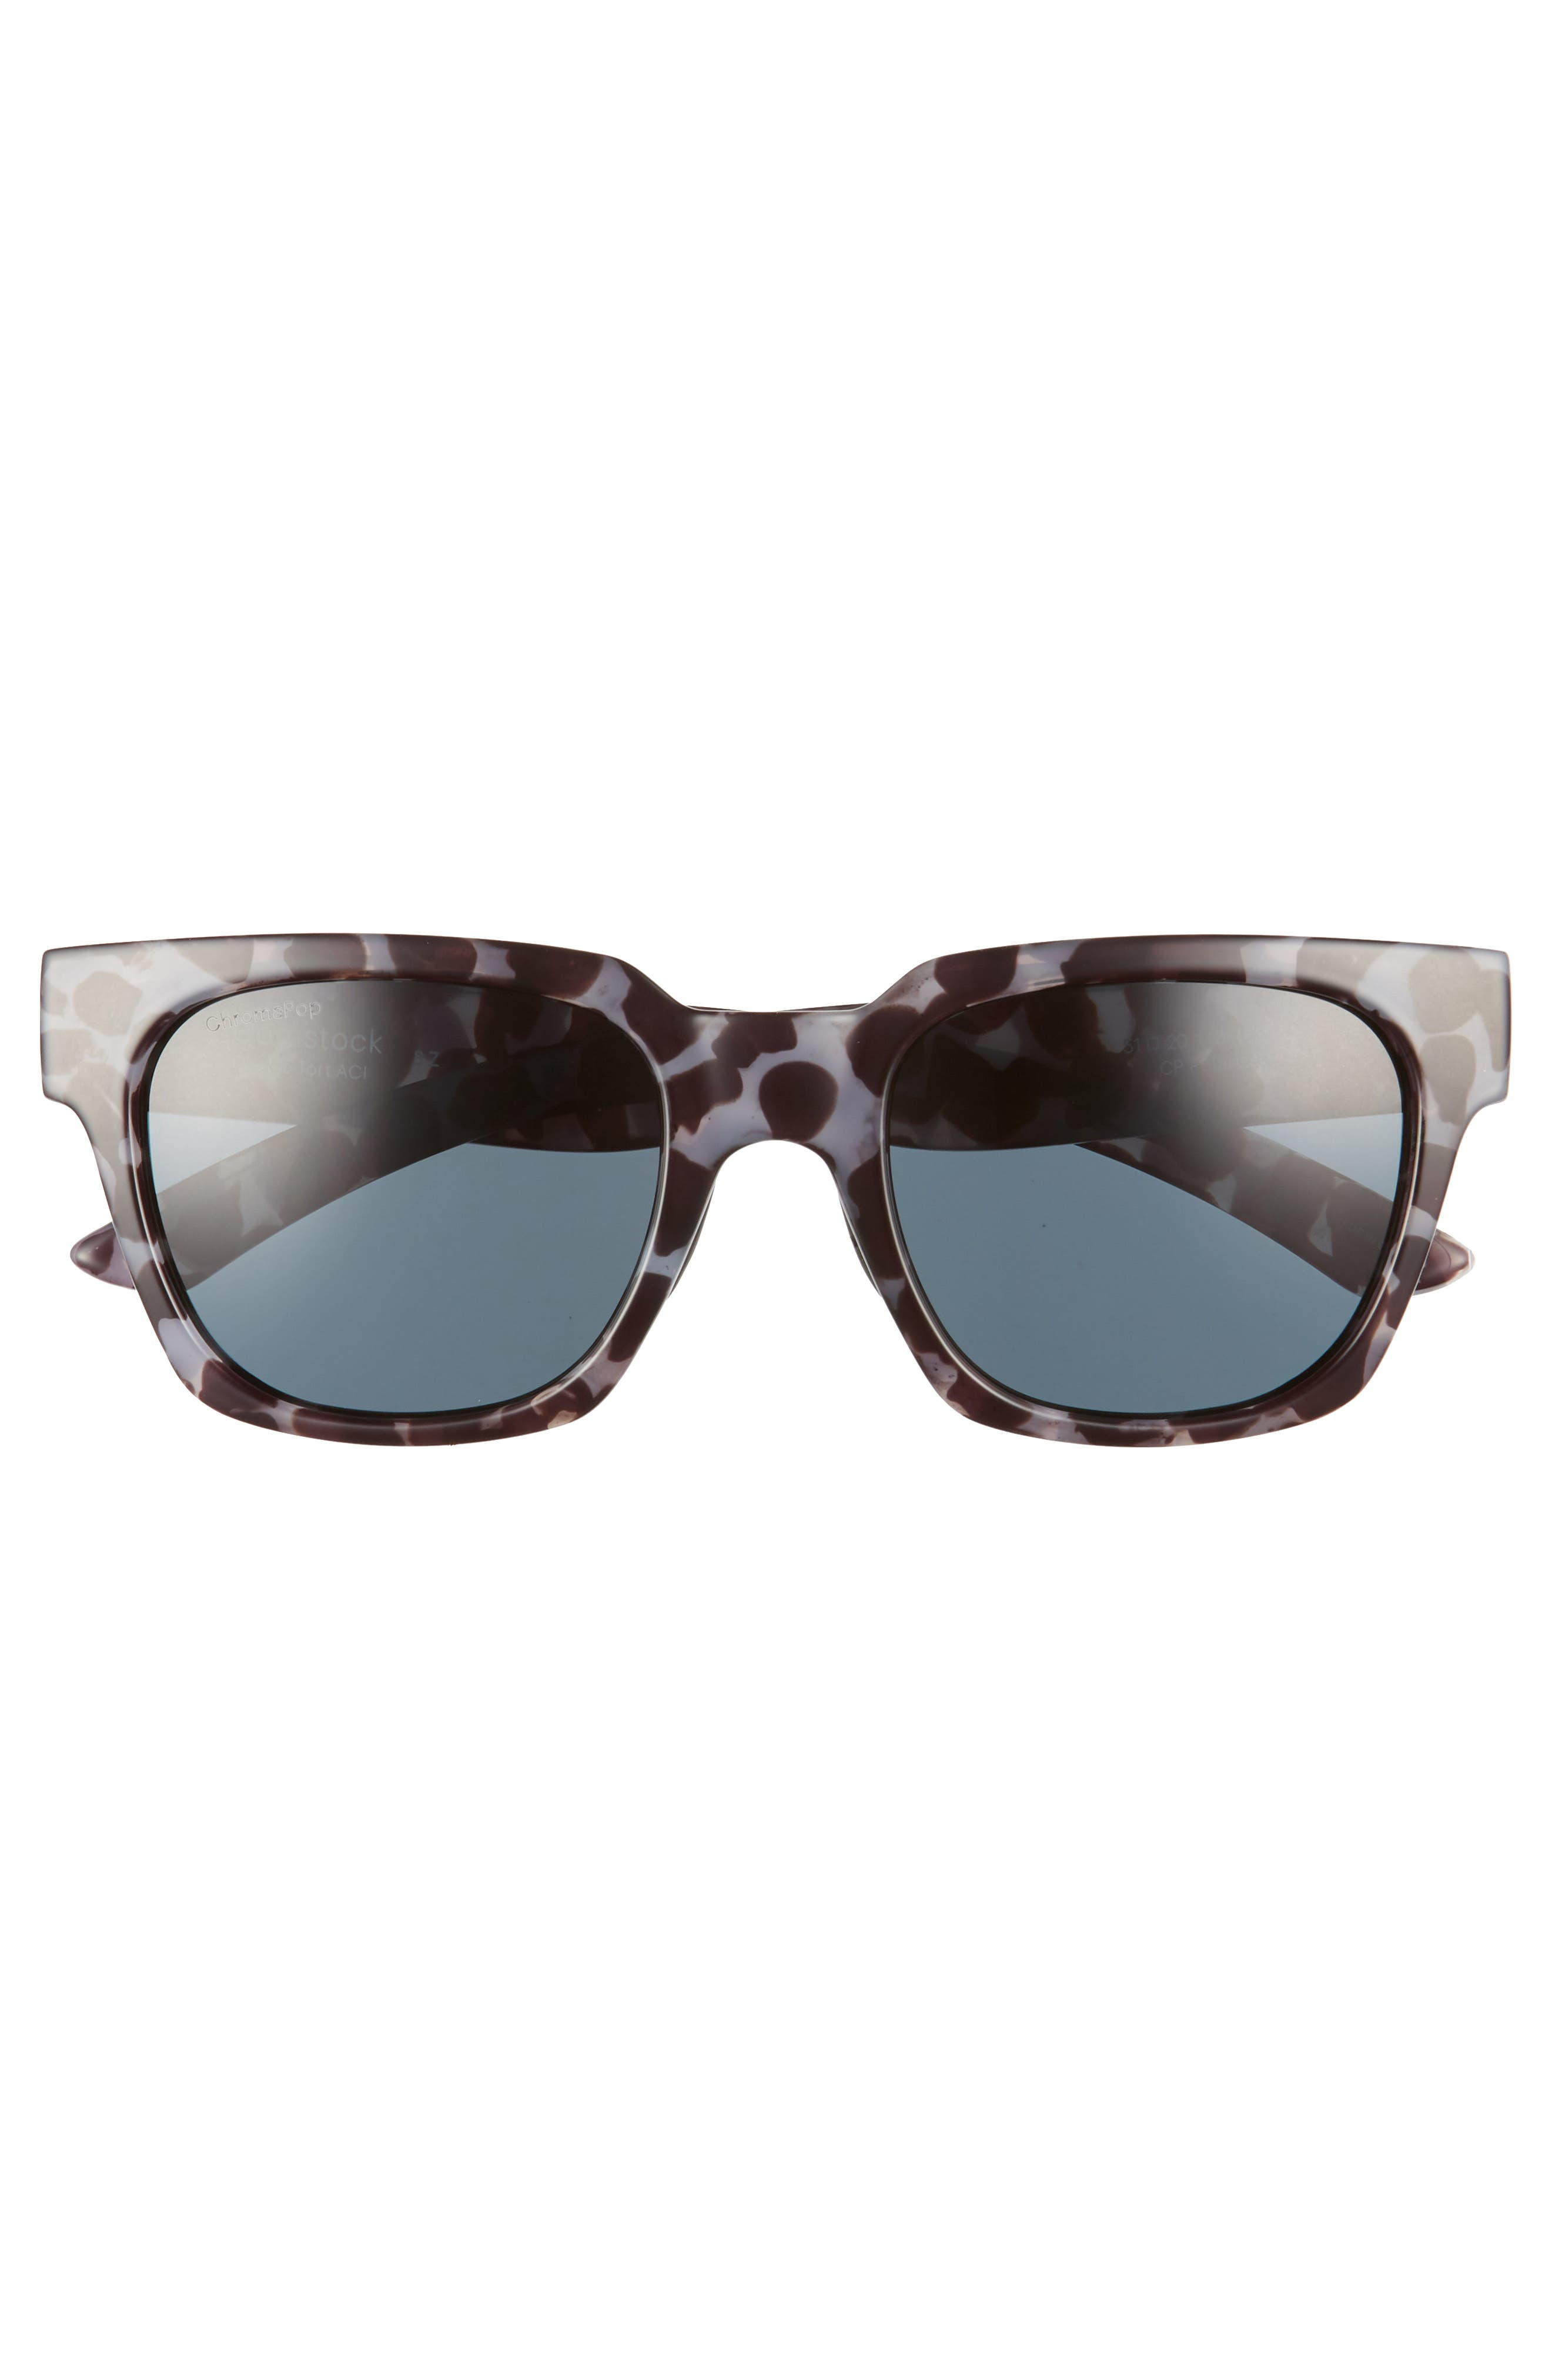 'Comstock' 52mm Rectangular Sunglasses,                             Alternate thumbnail 3, color,                             CHOCOLATE TORTOISE